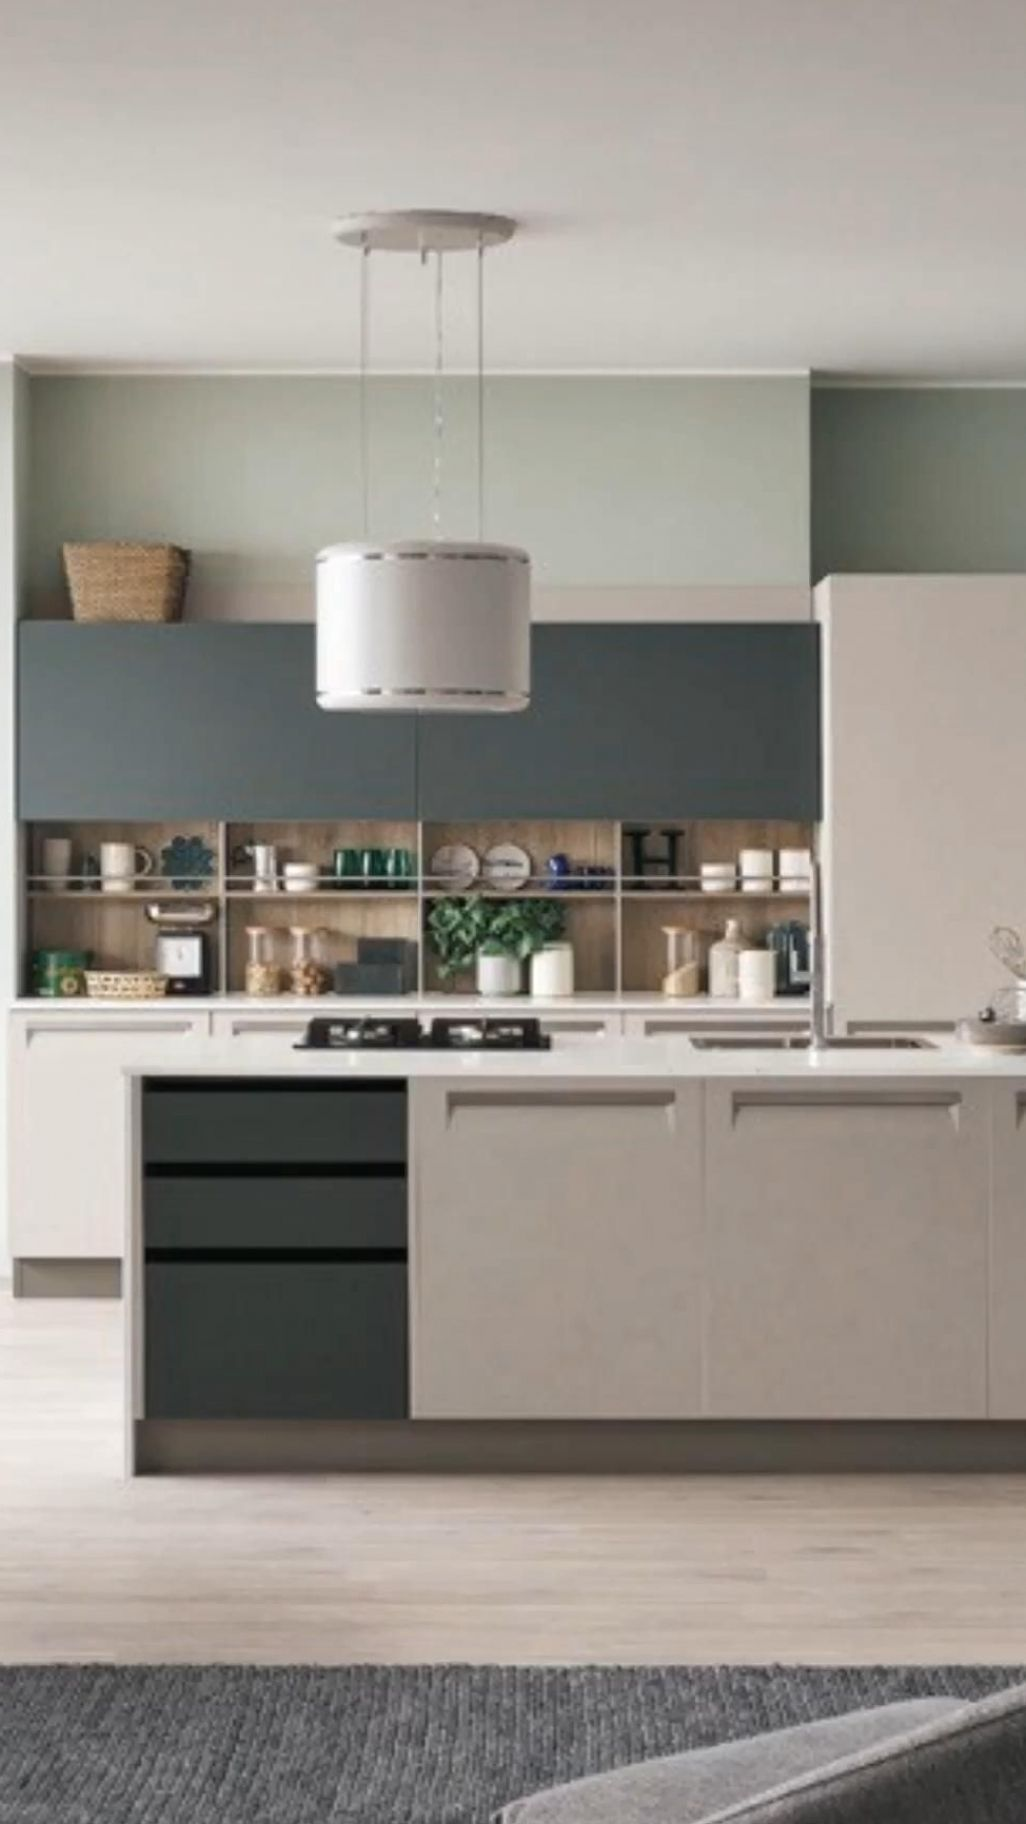 Cucina Cucina #kitchen #kitchendesign